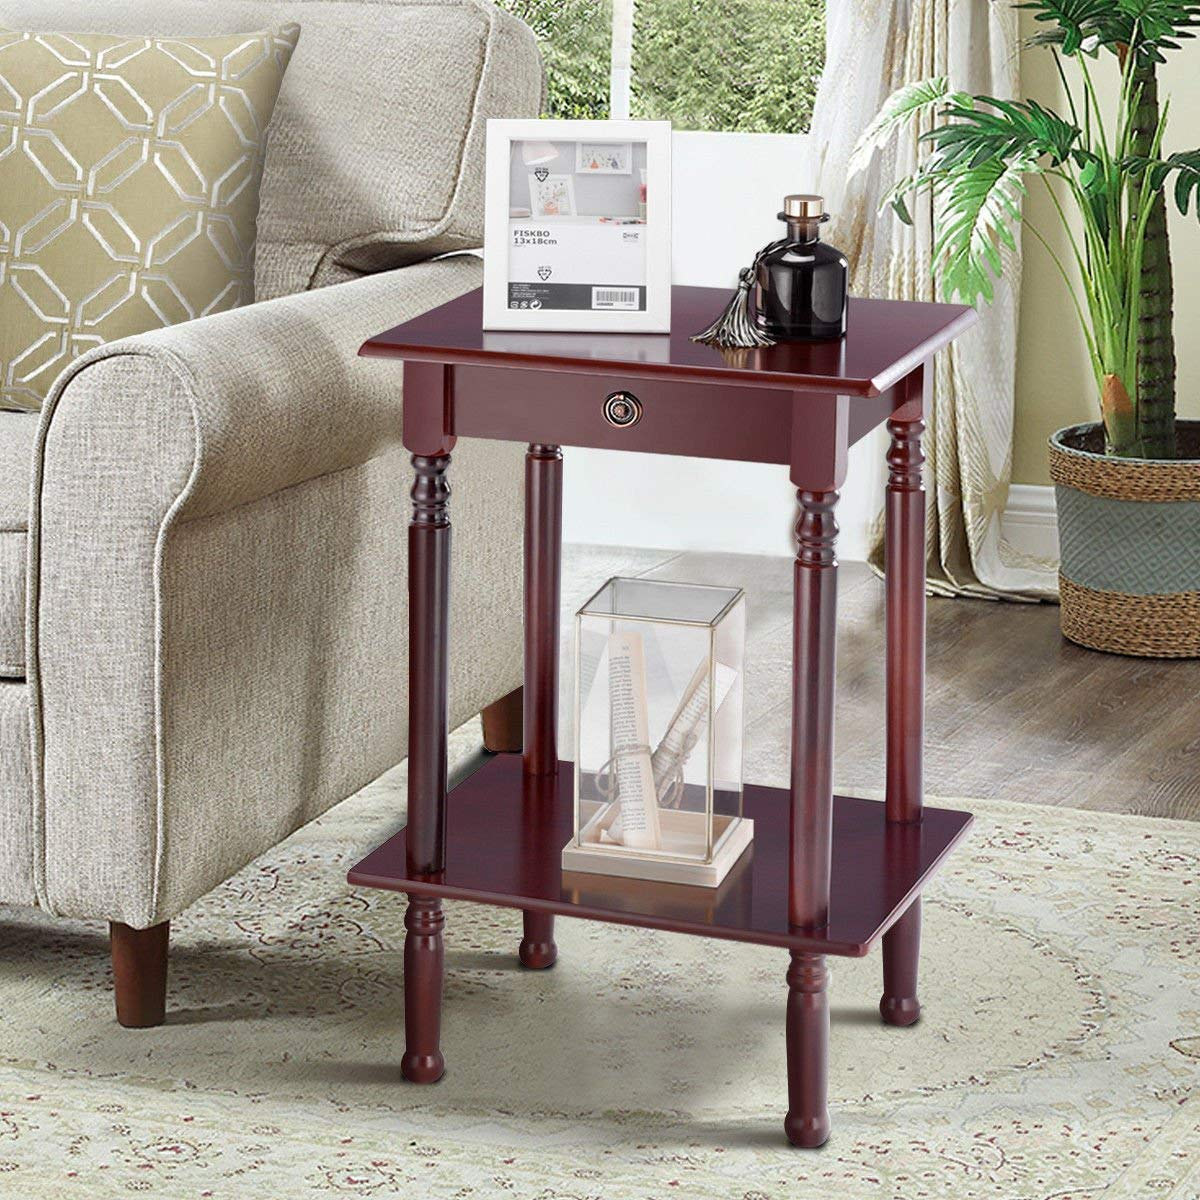 tangkula end table tall wood side accent style telephone stand home office furniture shelf tables wooden dog kennel kits antique brookstone cocktail master macy tampa pulaski wine